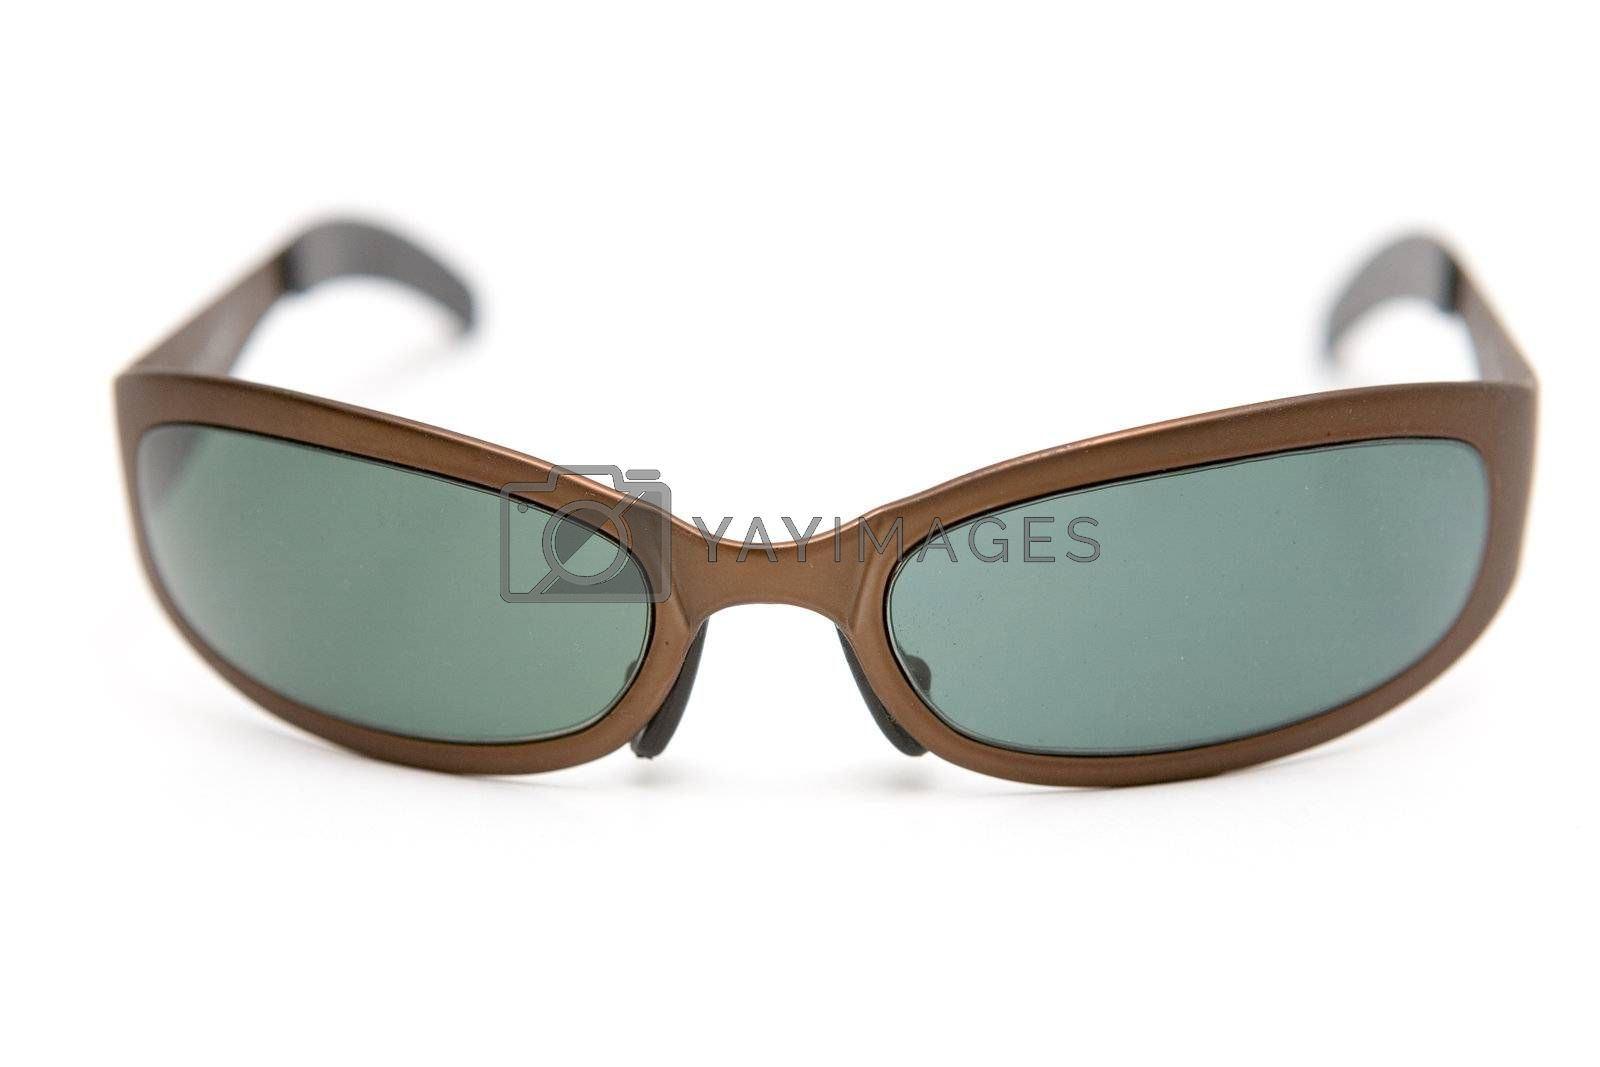 Royalty free image of Sunglasses by Luminis